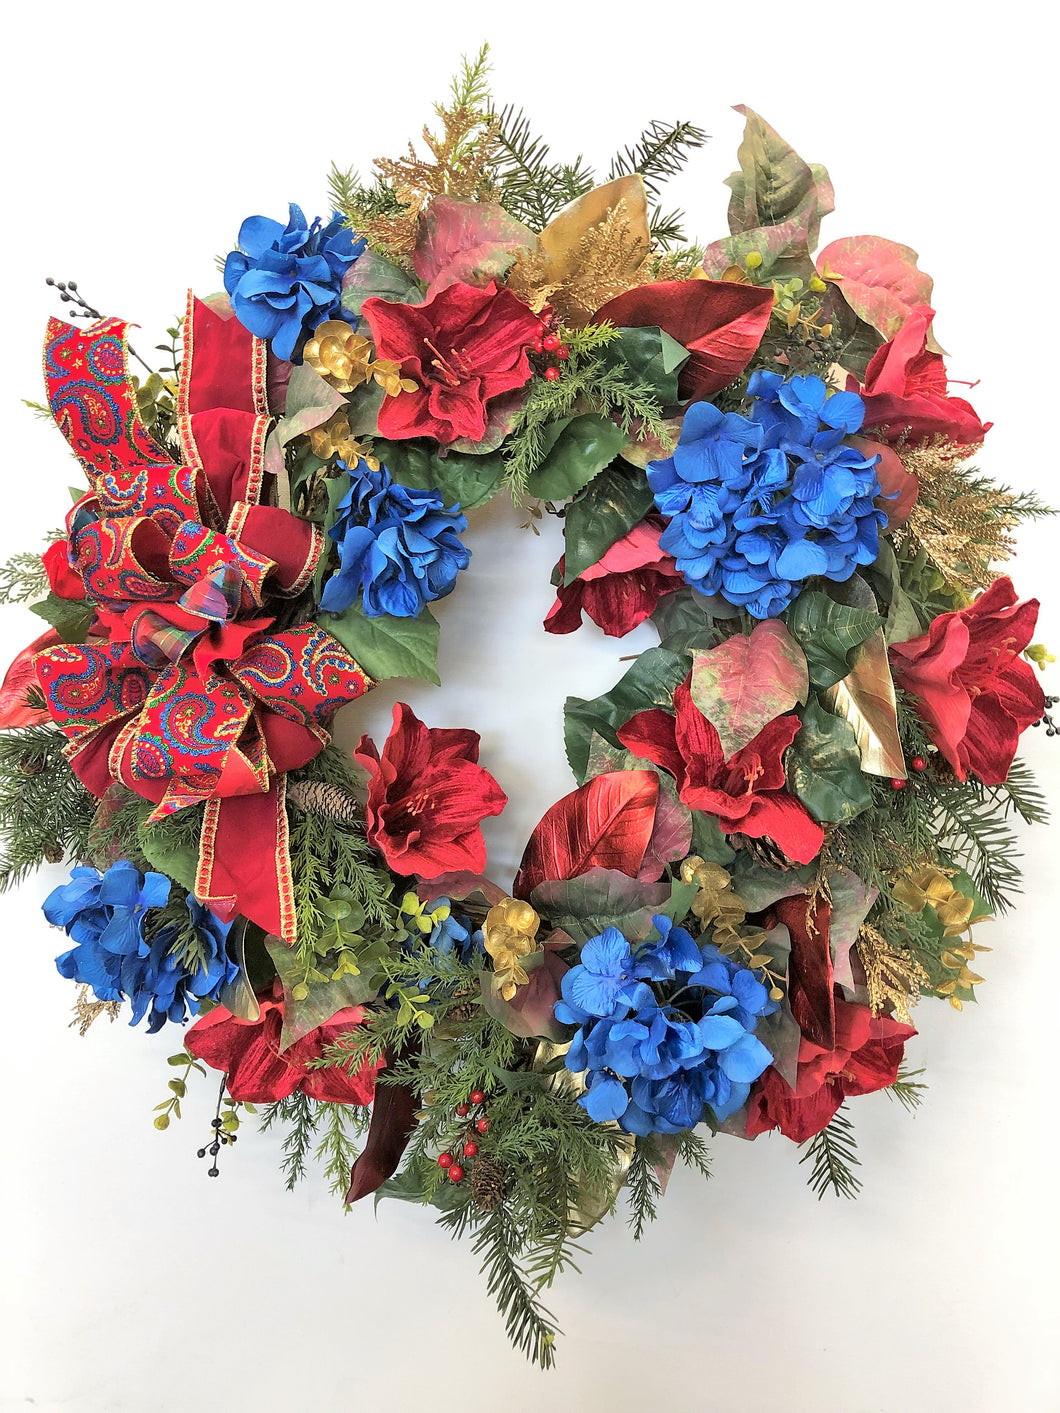 Red, Blue and Gold Large Holiday Winter Wreath with Hydrangeas/Hol72 - April's Garden